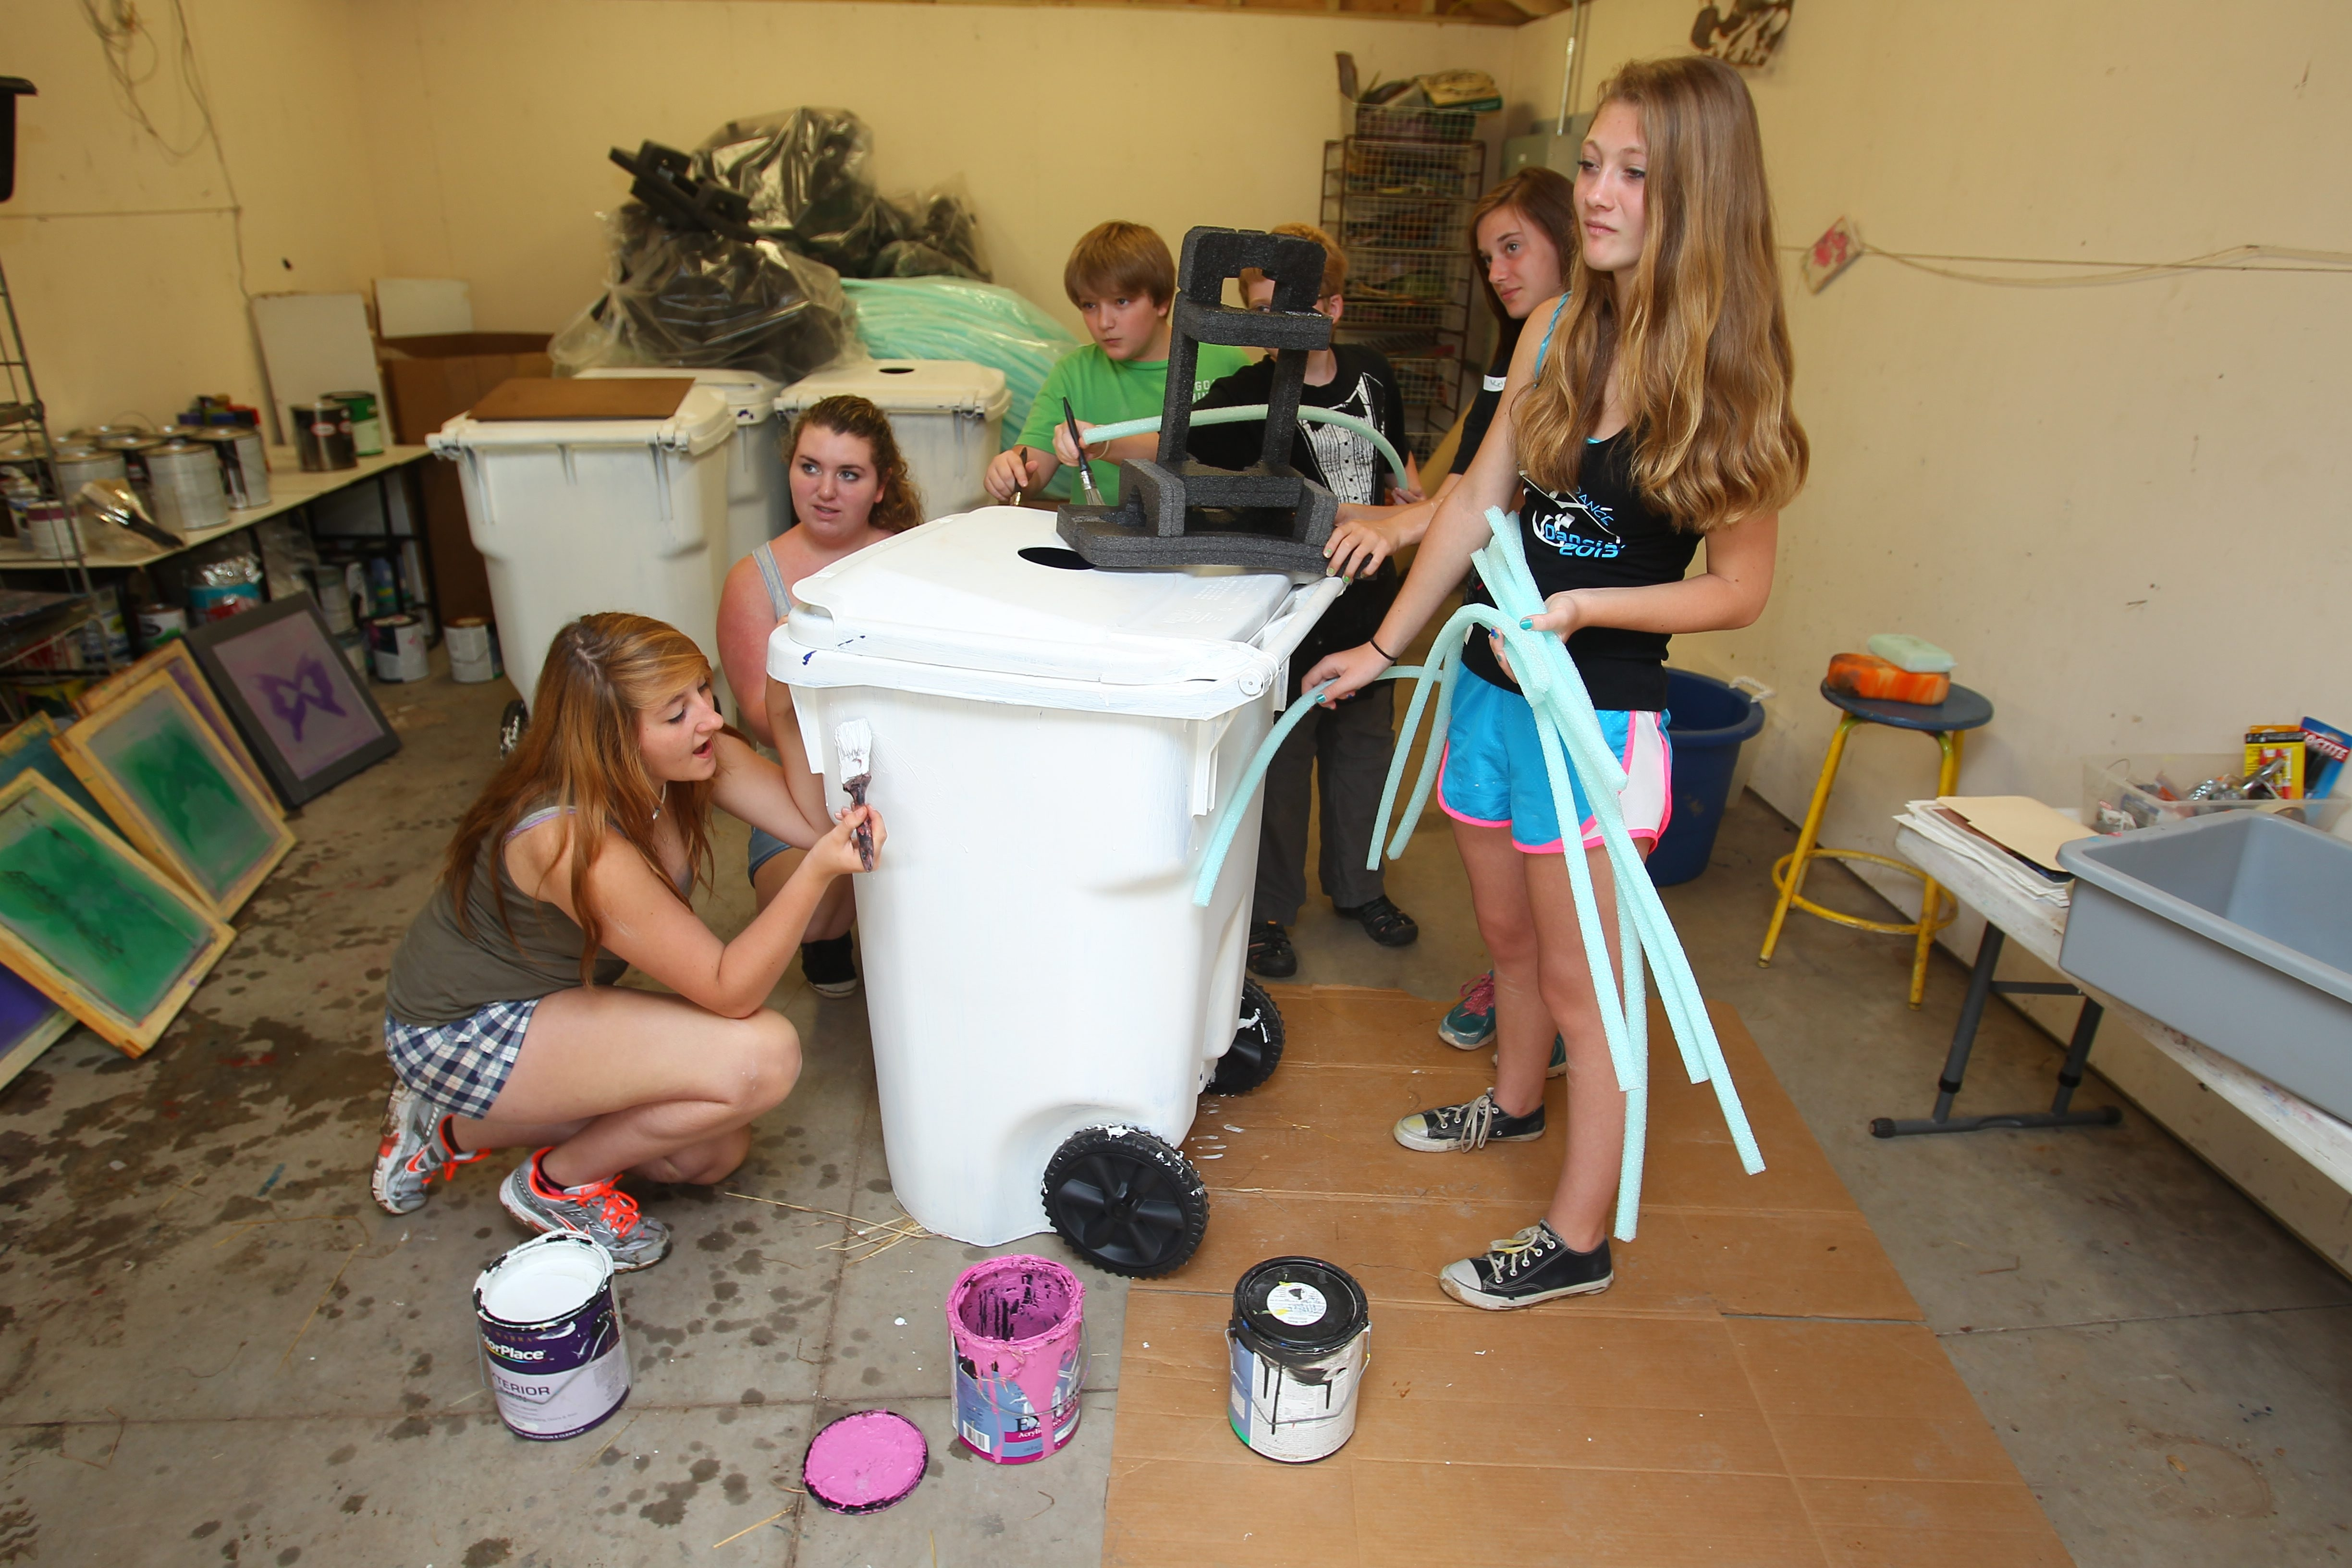 Family oriented programming at Artpark includes summer camp for children. Last year these kids painted garbage/recycle cans for the Lewiston Arts Festival. (Buffalo News file photo)